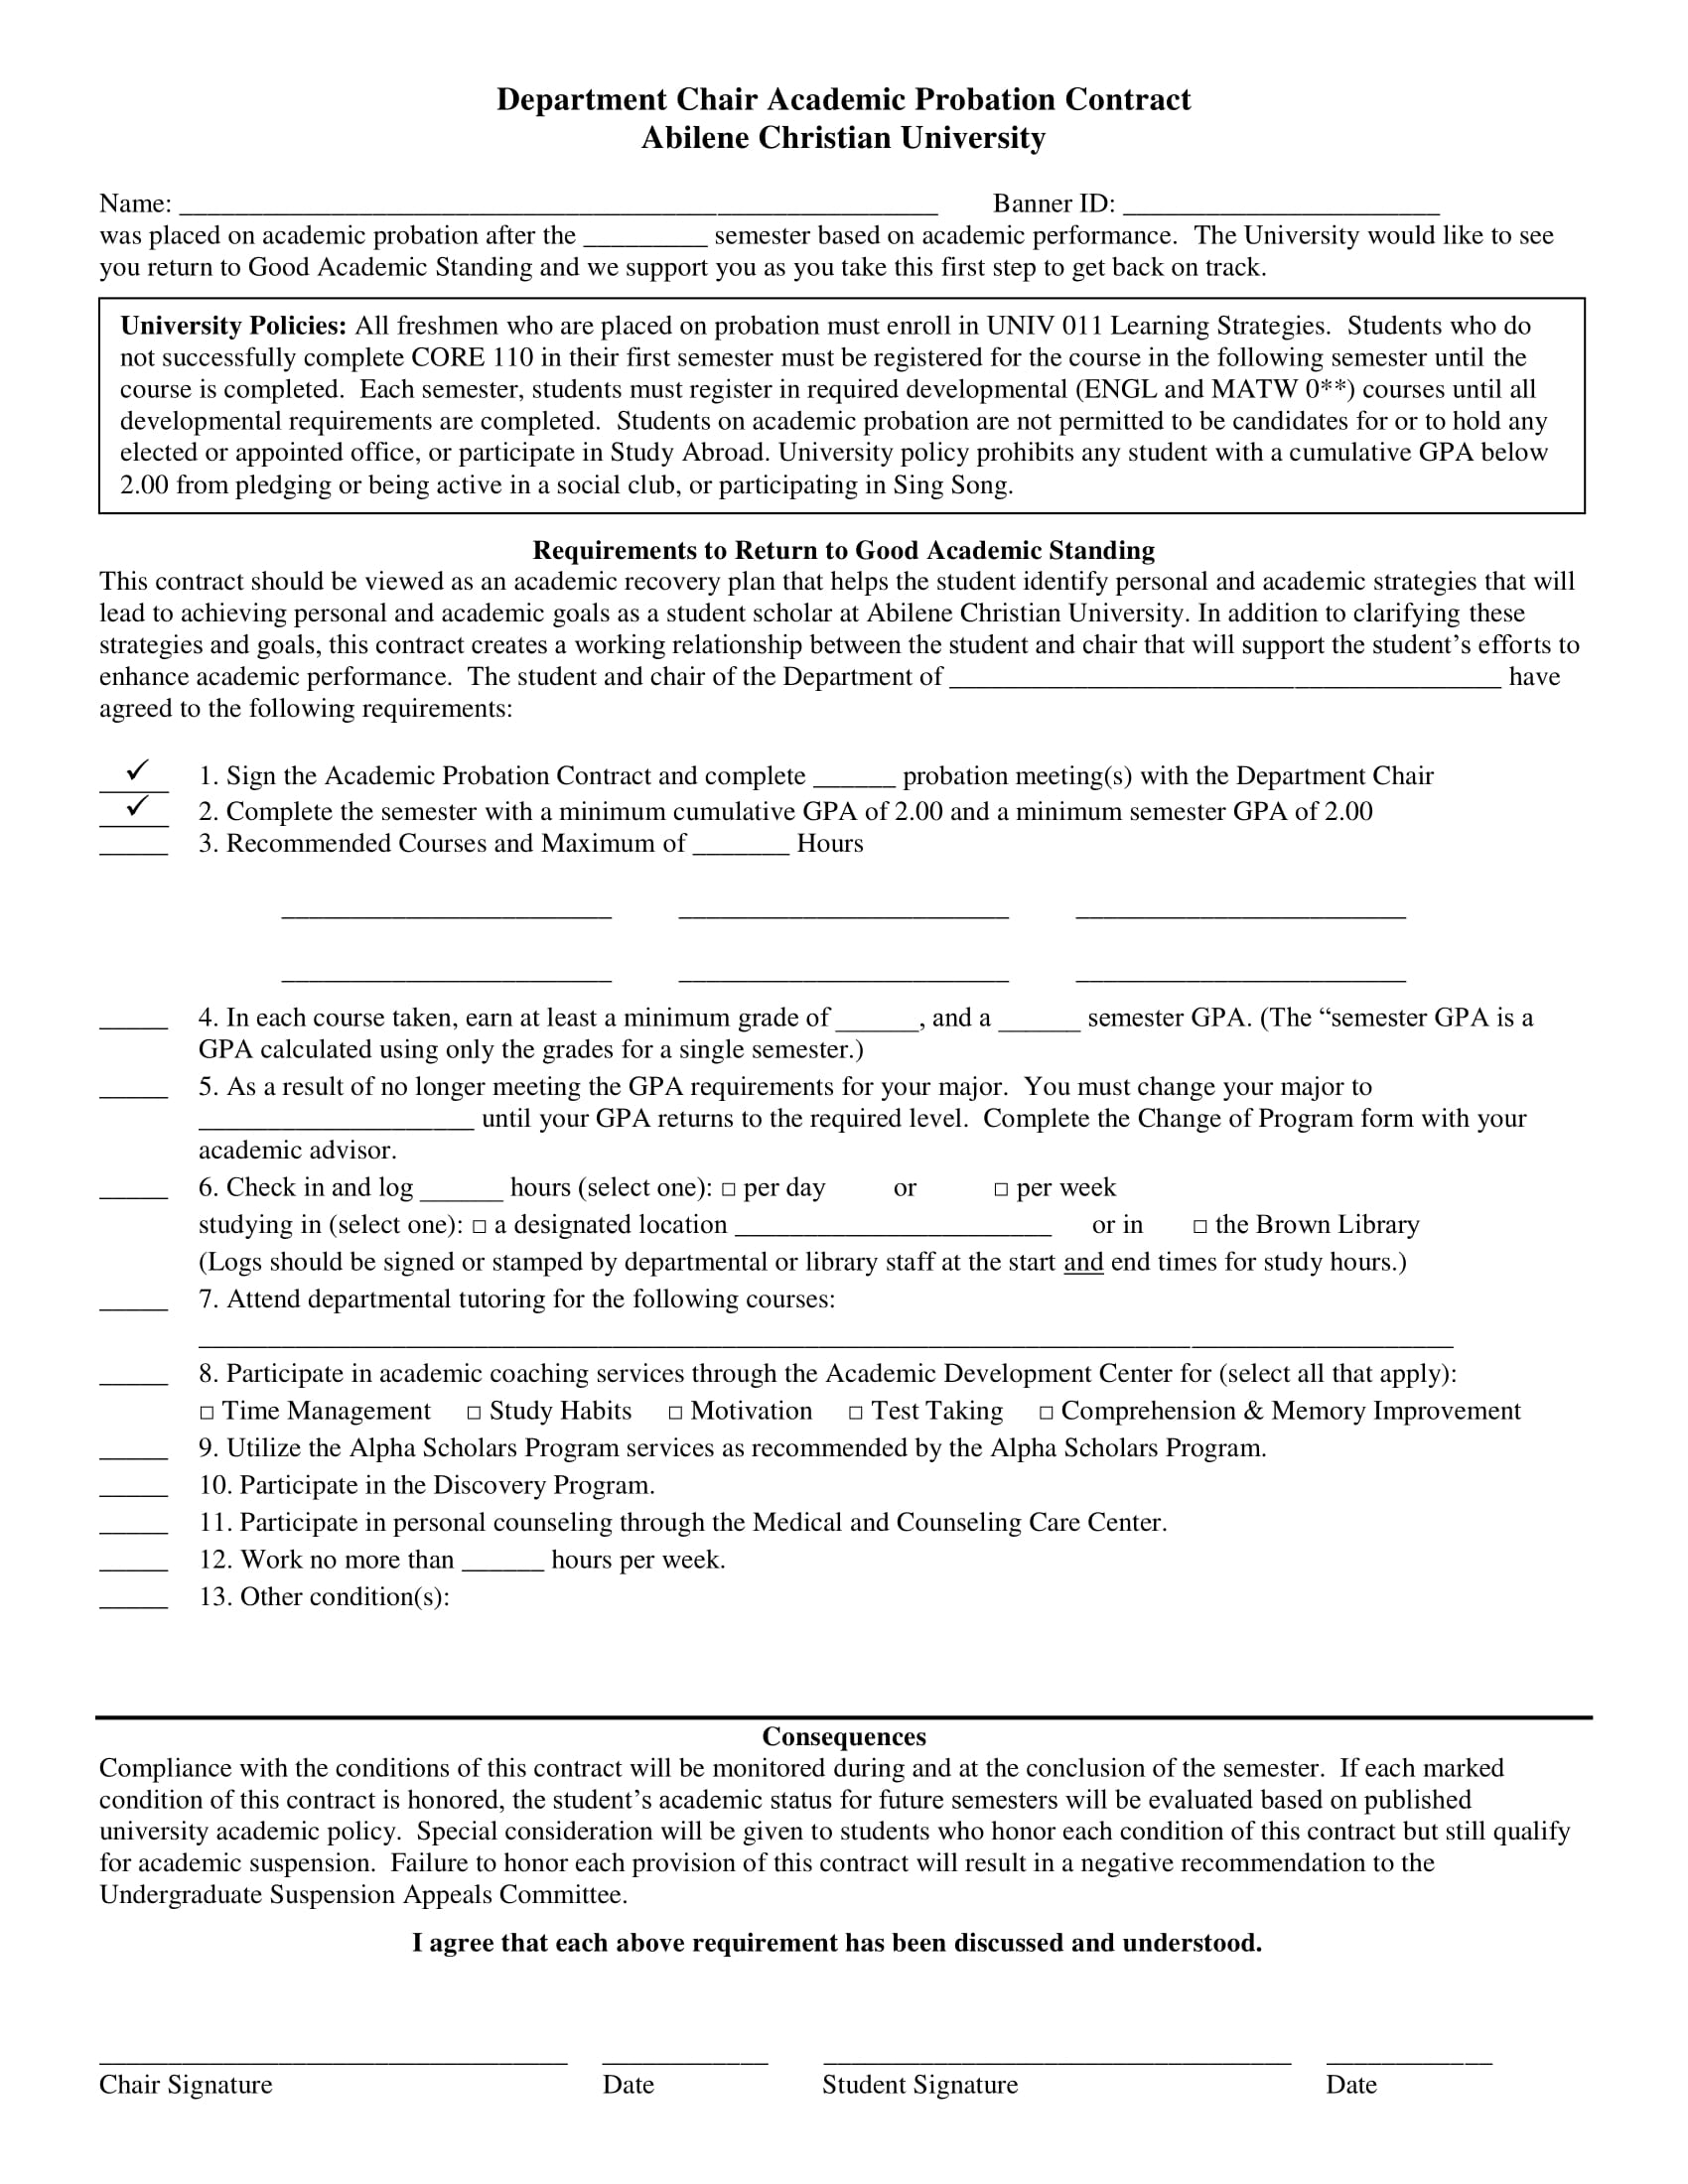 student academic probation contract template example 1